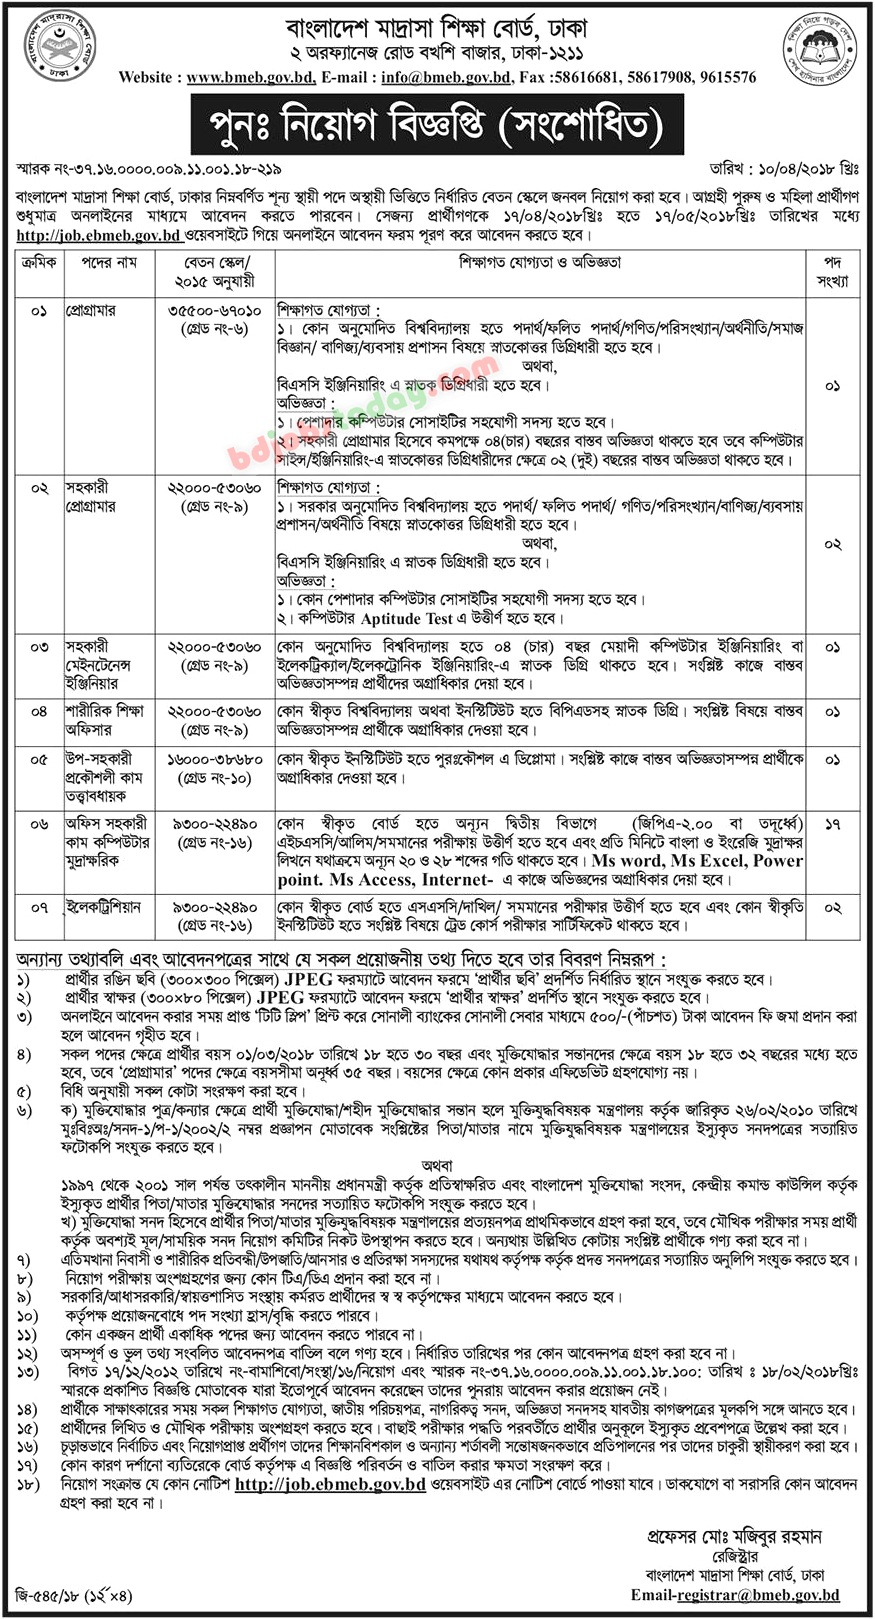 Bangladesh Madrasha Education Board jobs